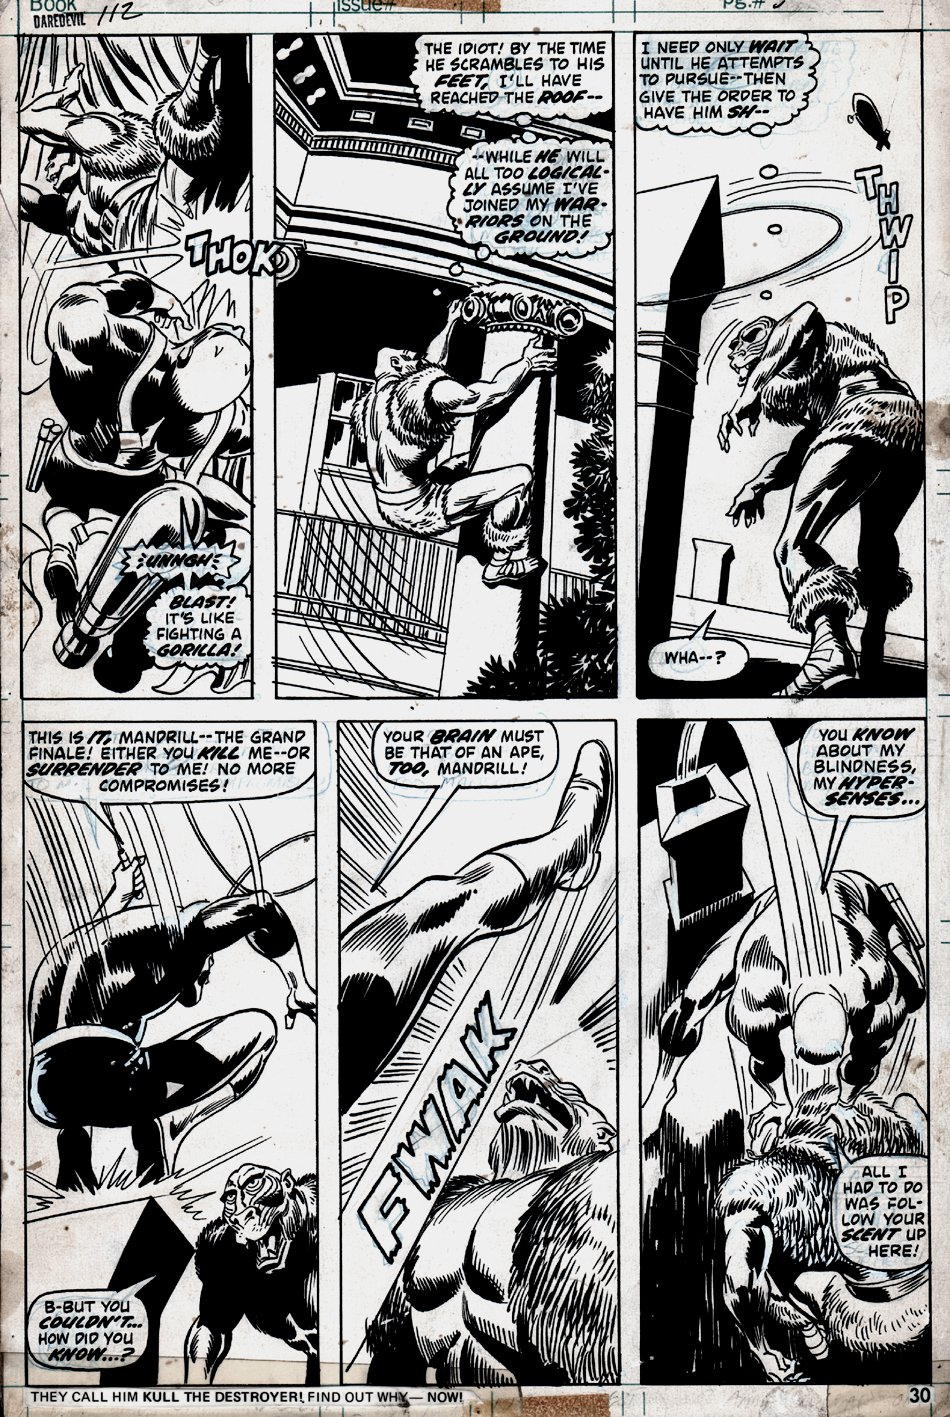 Daredevil #112 p 30 (BEST BATTLE PAGE IN BOOK!) 1974